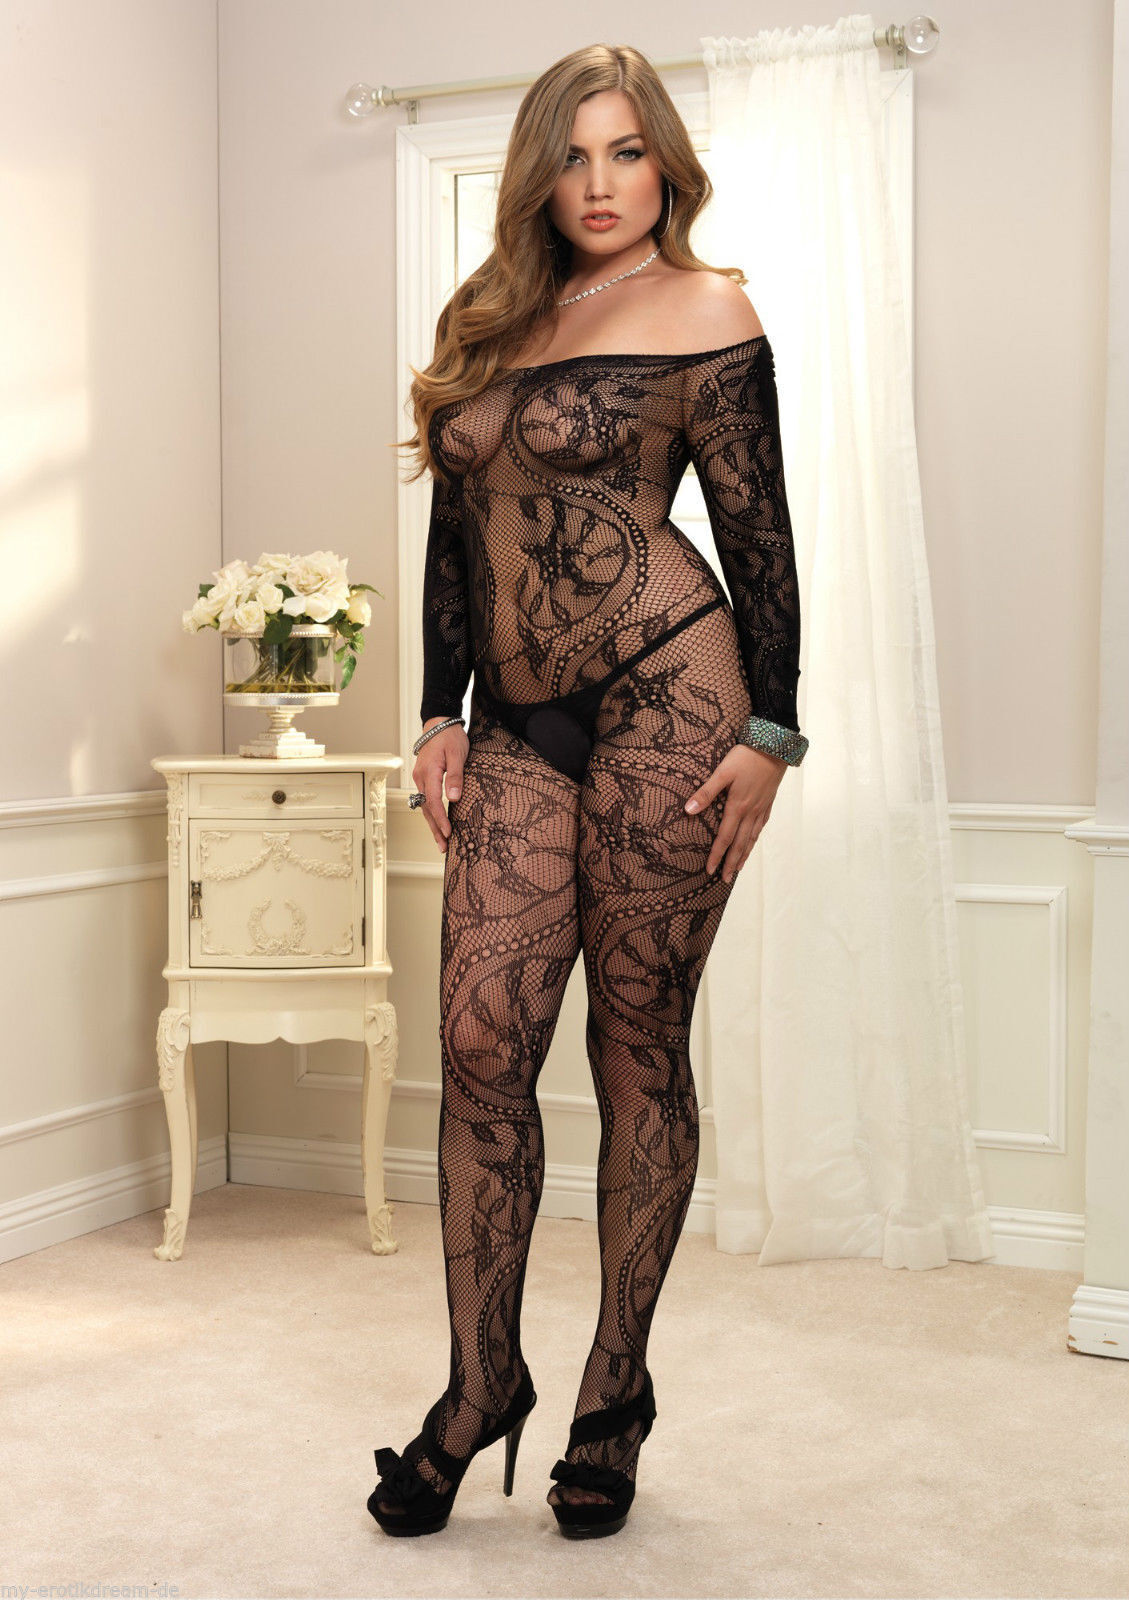 76e49f70f18 Details about SEXY BODYSTOCKING BODYSUIT LINGERIE NIGHTWEAR PLUS SIZE  LINGERIE UK 14-22